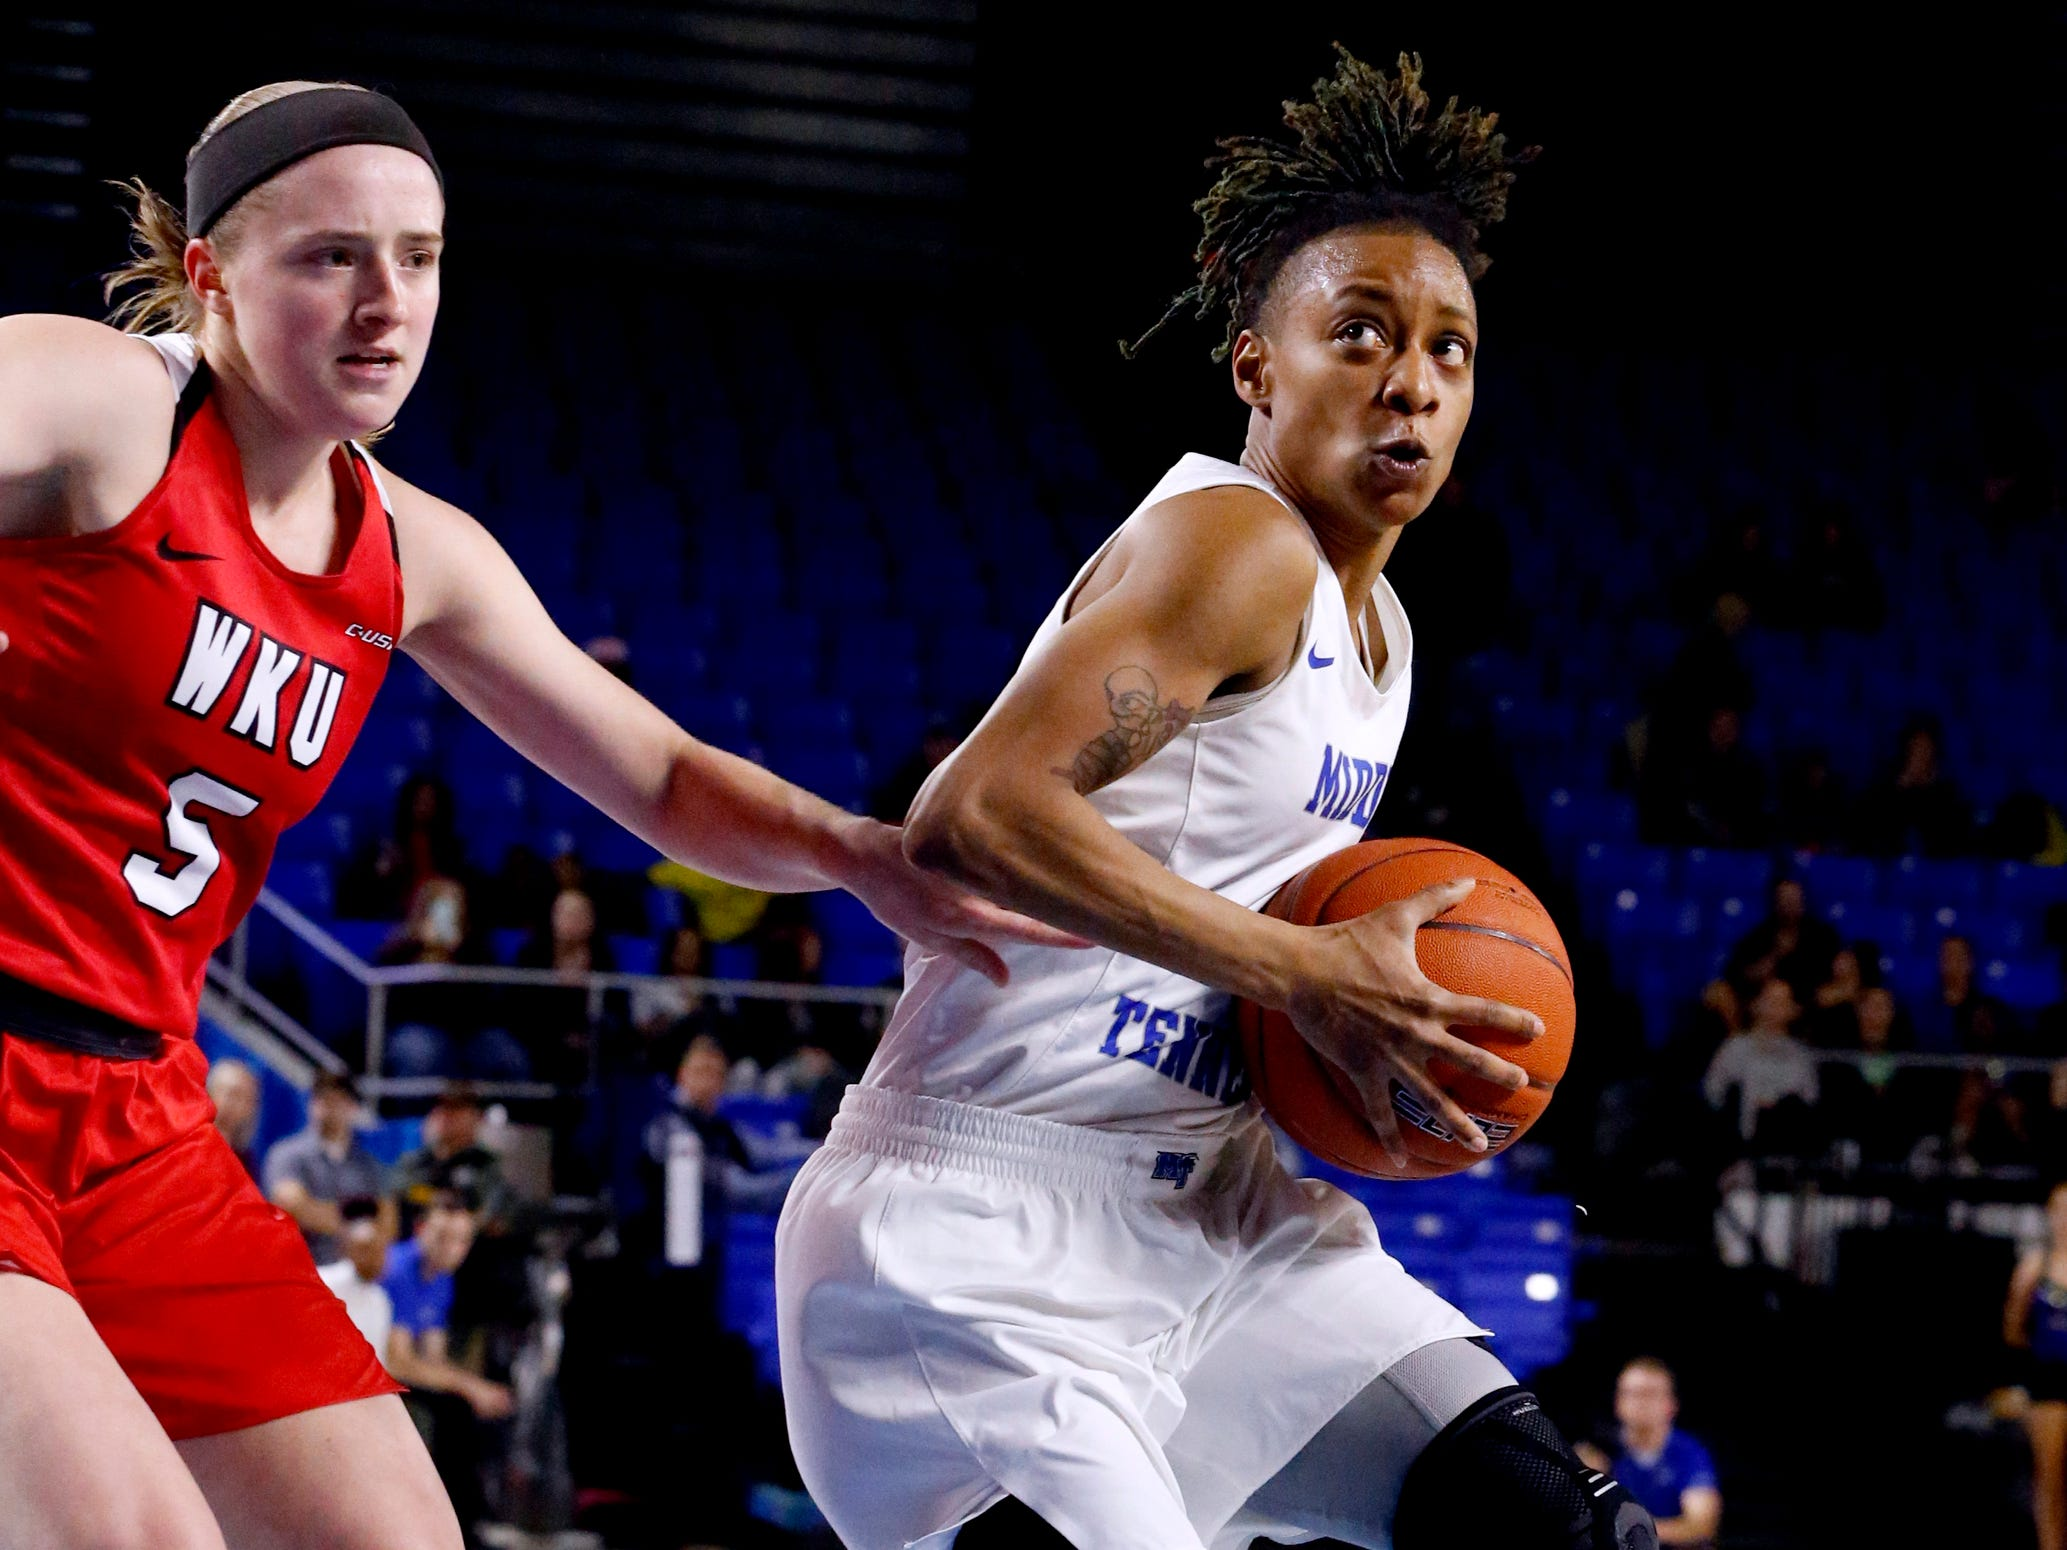 MTSU's guard A'Queen Hayes (1) goes up for a shot as Western's guard Whitney Creech (5) guards her on Thursday, Feb. 14, 2019.